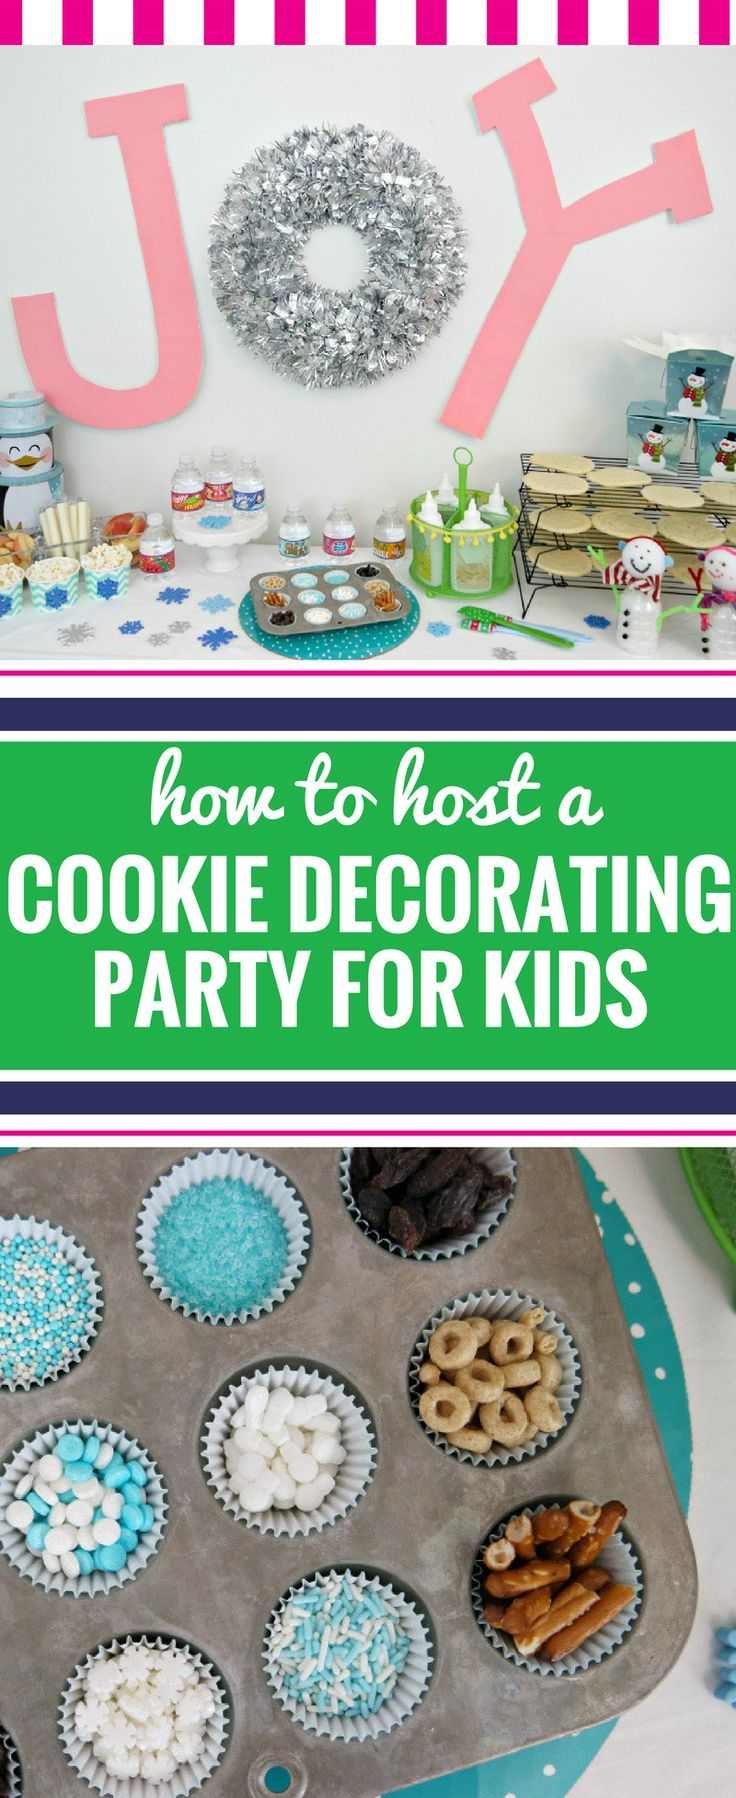 Cookie decorating party ideas - Cookie Decorating Party For Kids